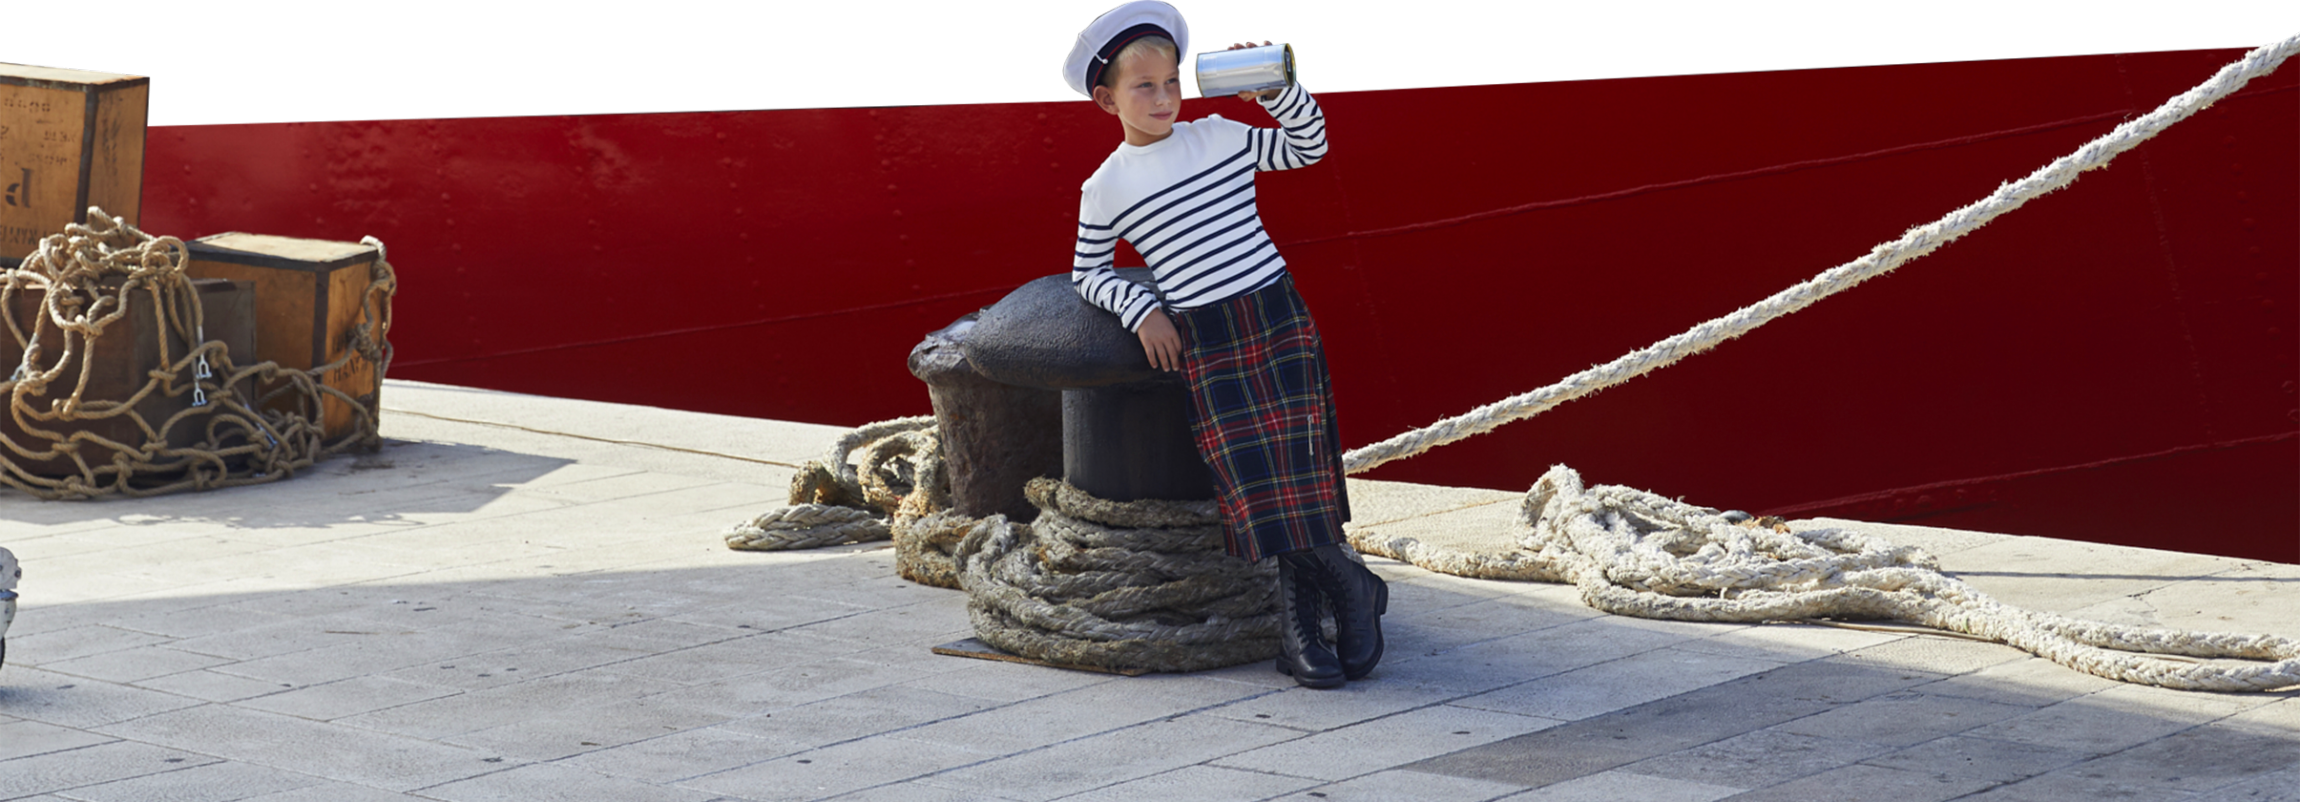 Visual of the new campaign with with a child in a kilt and striped shirt at quay holding a bottle of perfume like a long sight